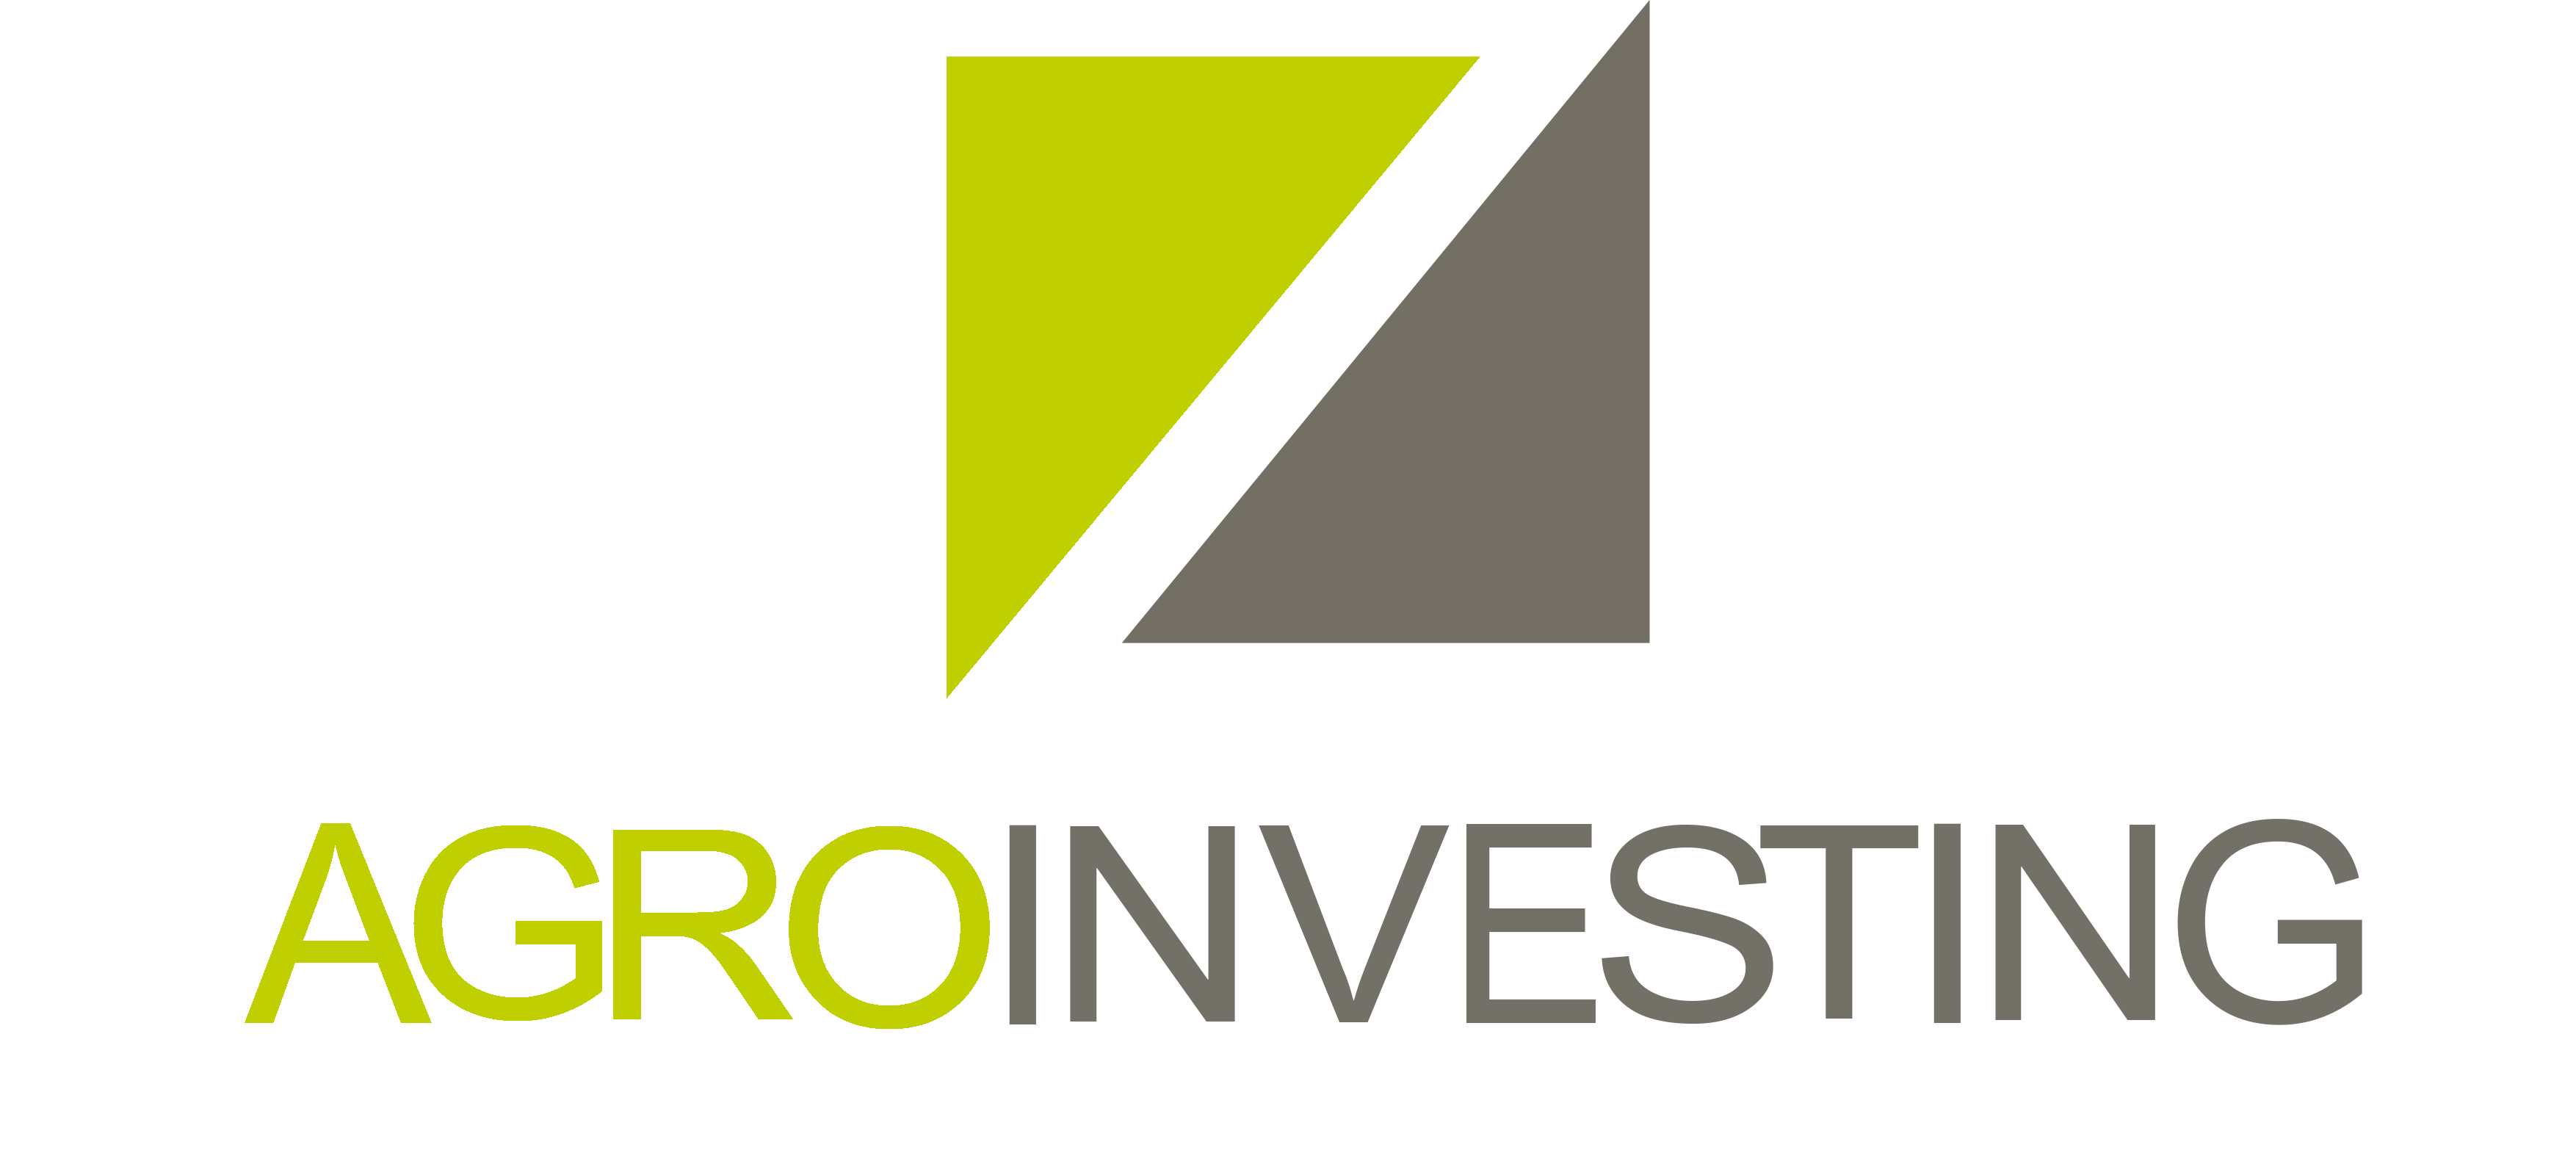 Agroinvesting Logo Oscuro